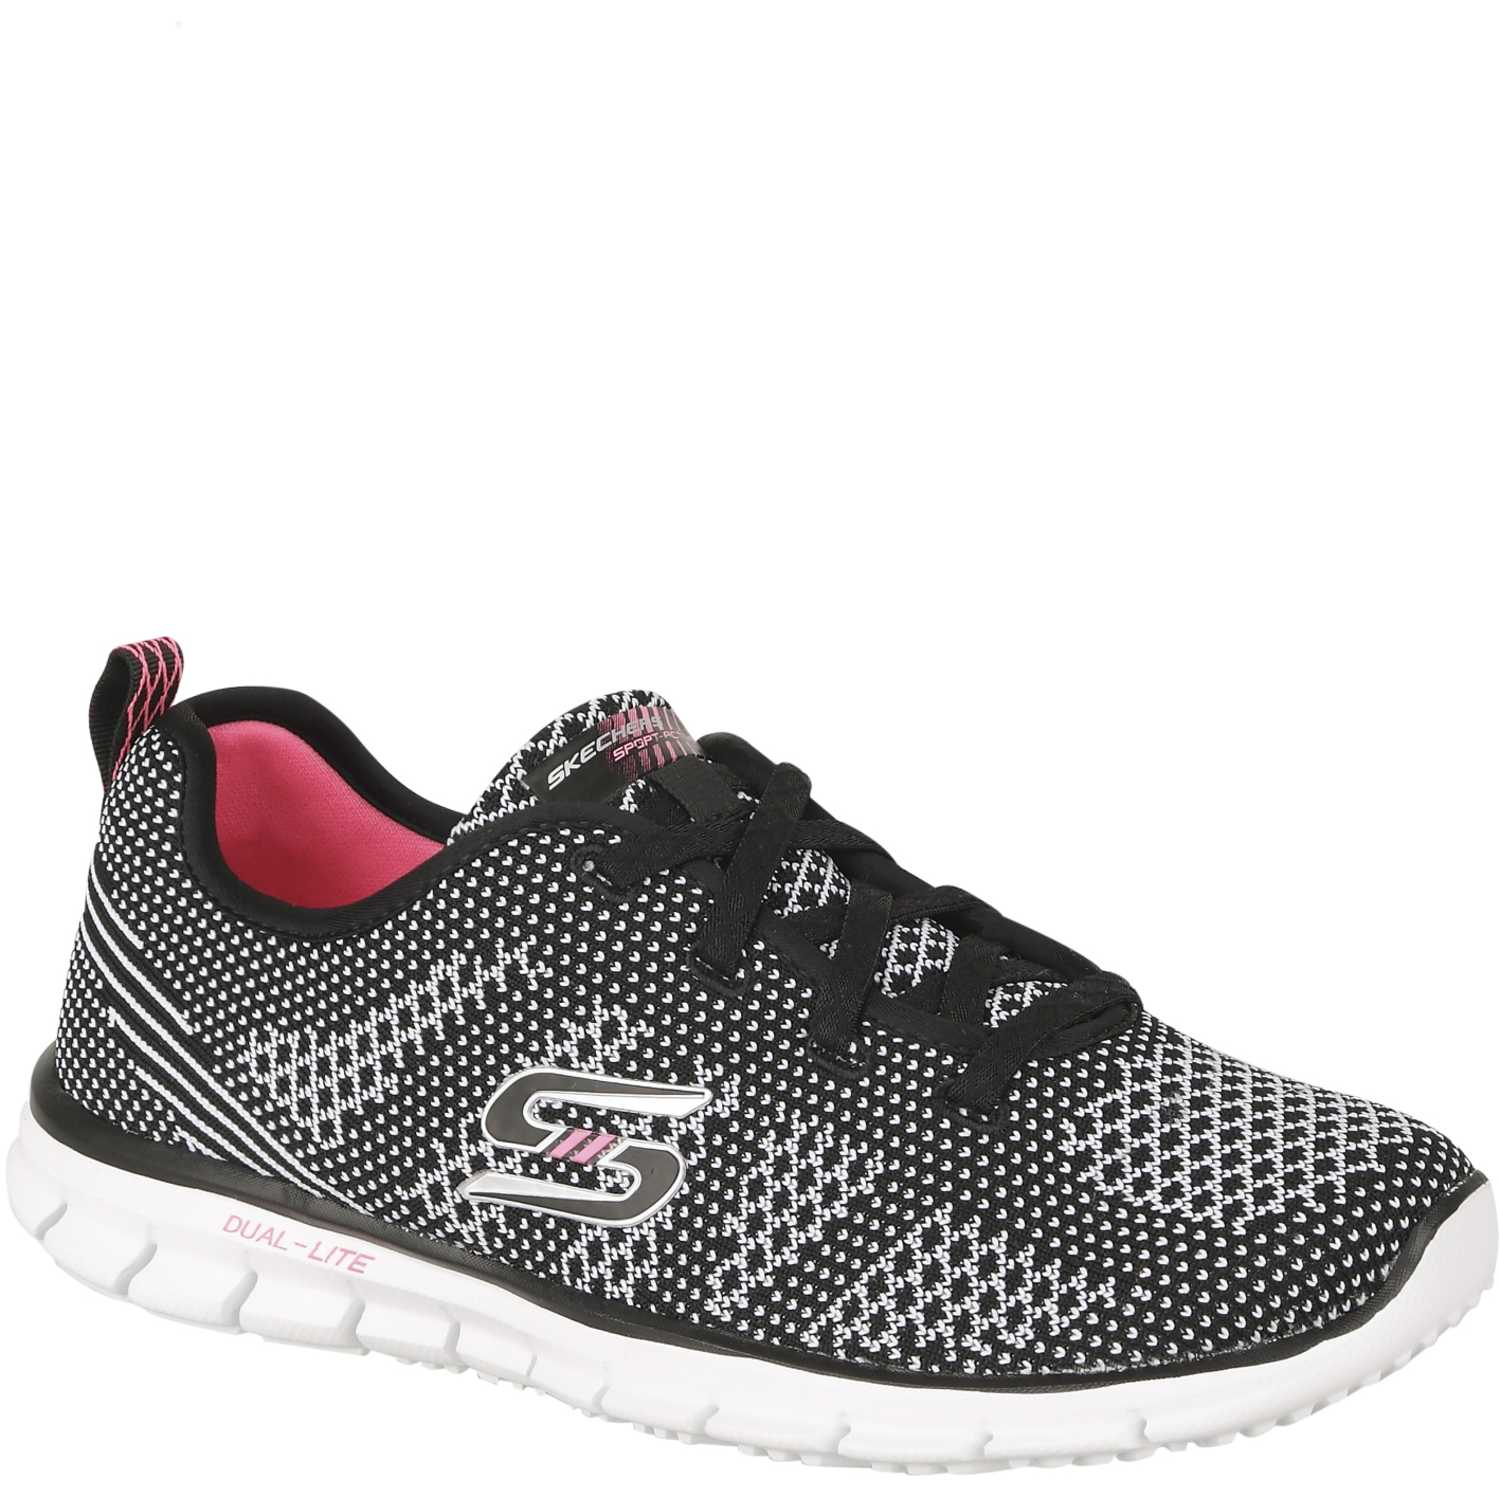 Casual de Mujer Skechers Negro forever young 22880